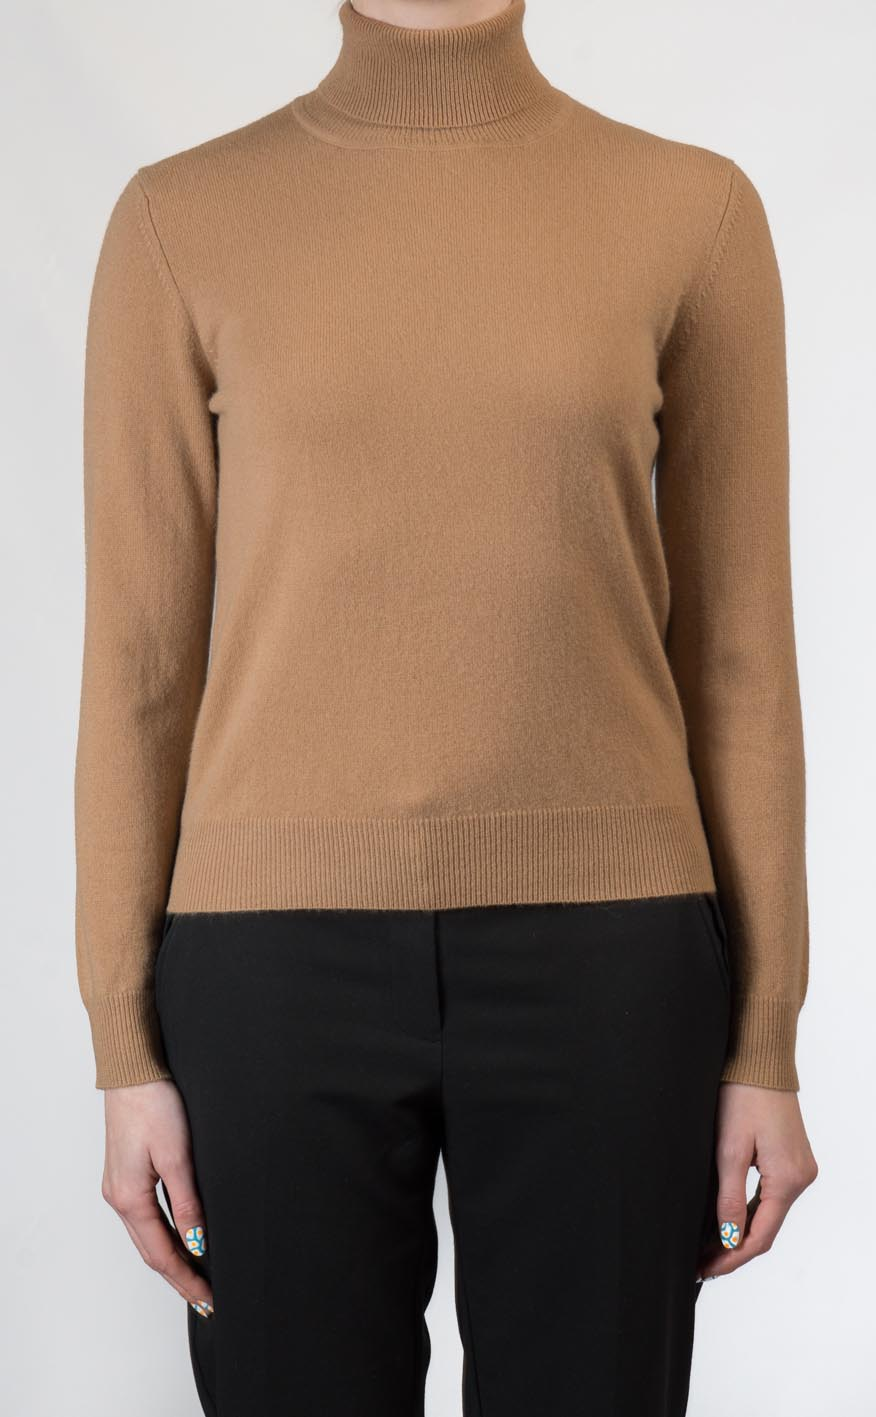 5e960e7803b Ladies Cashmere Roll Neck Sweater by Scotweb